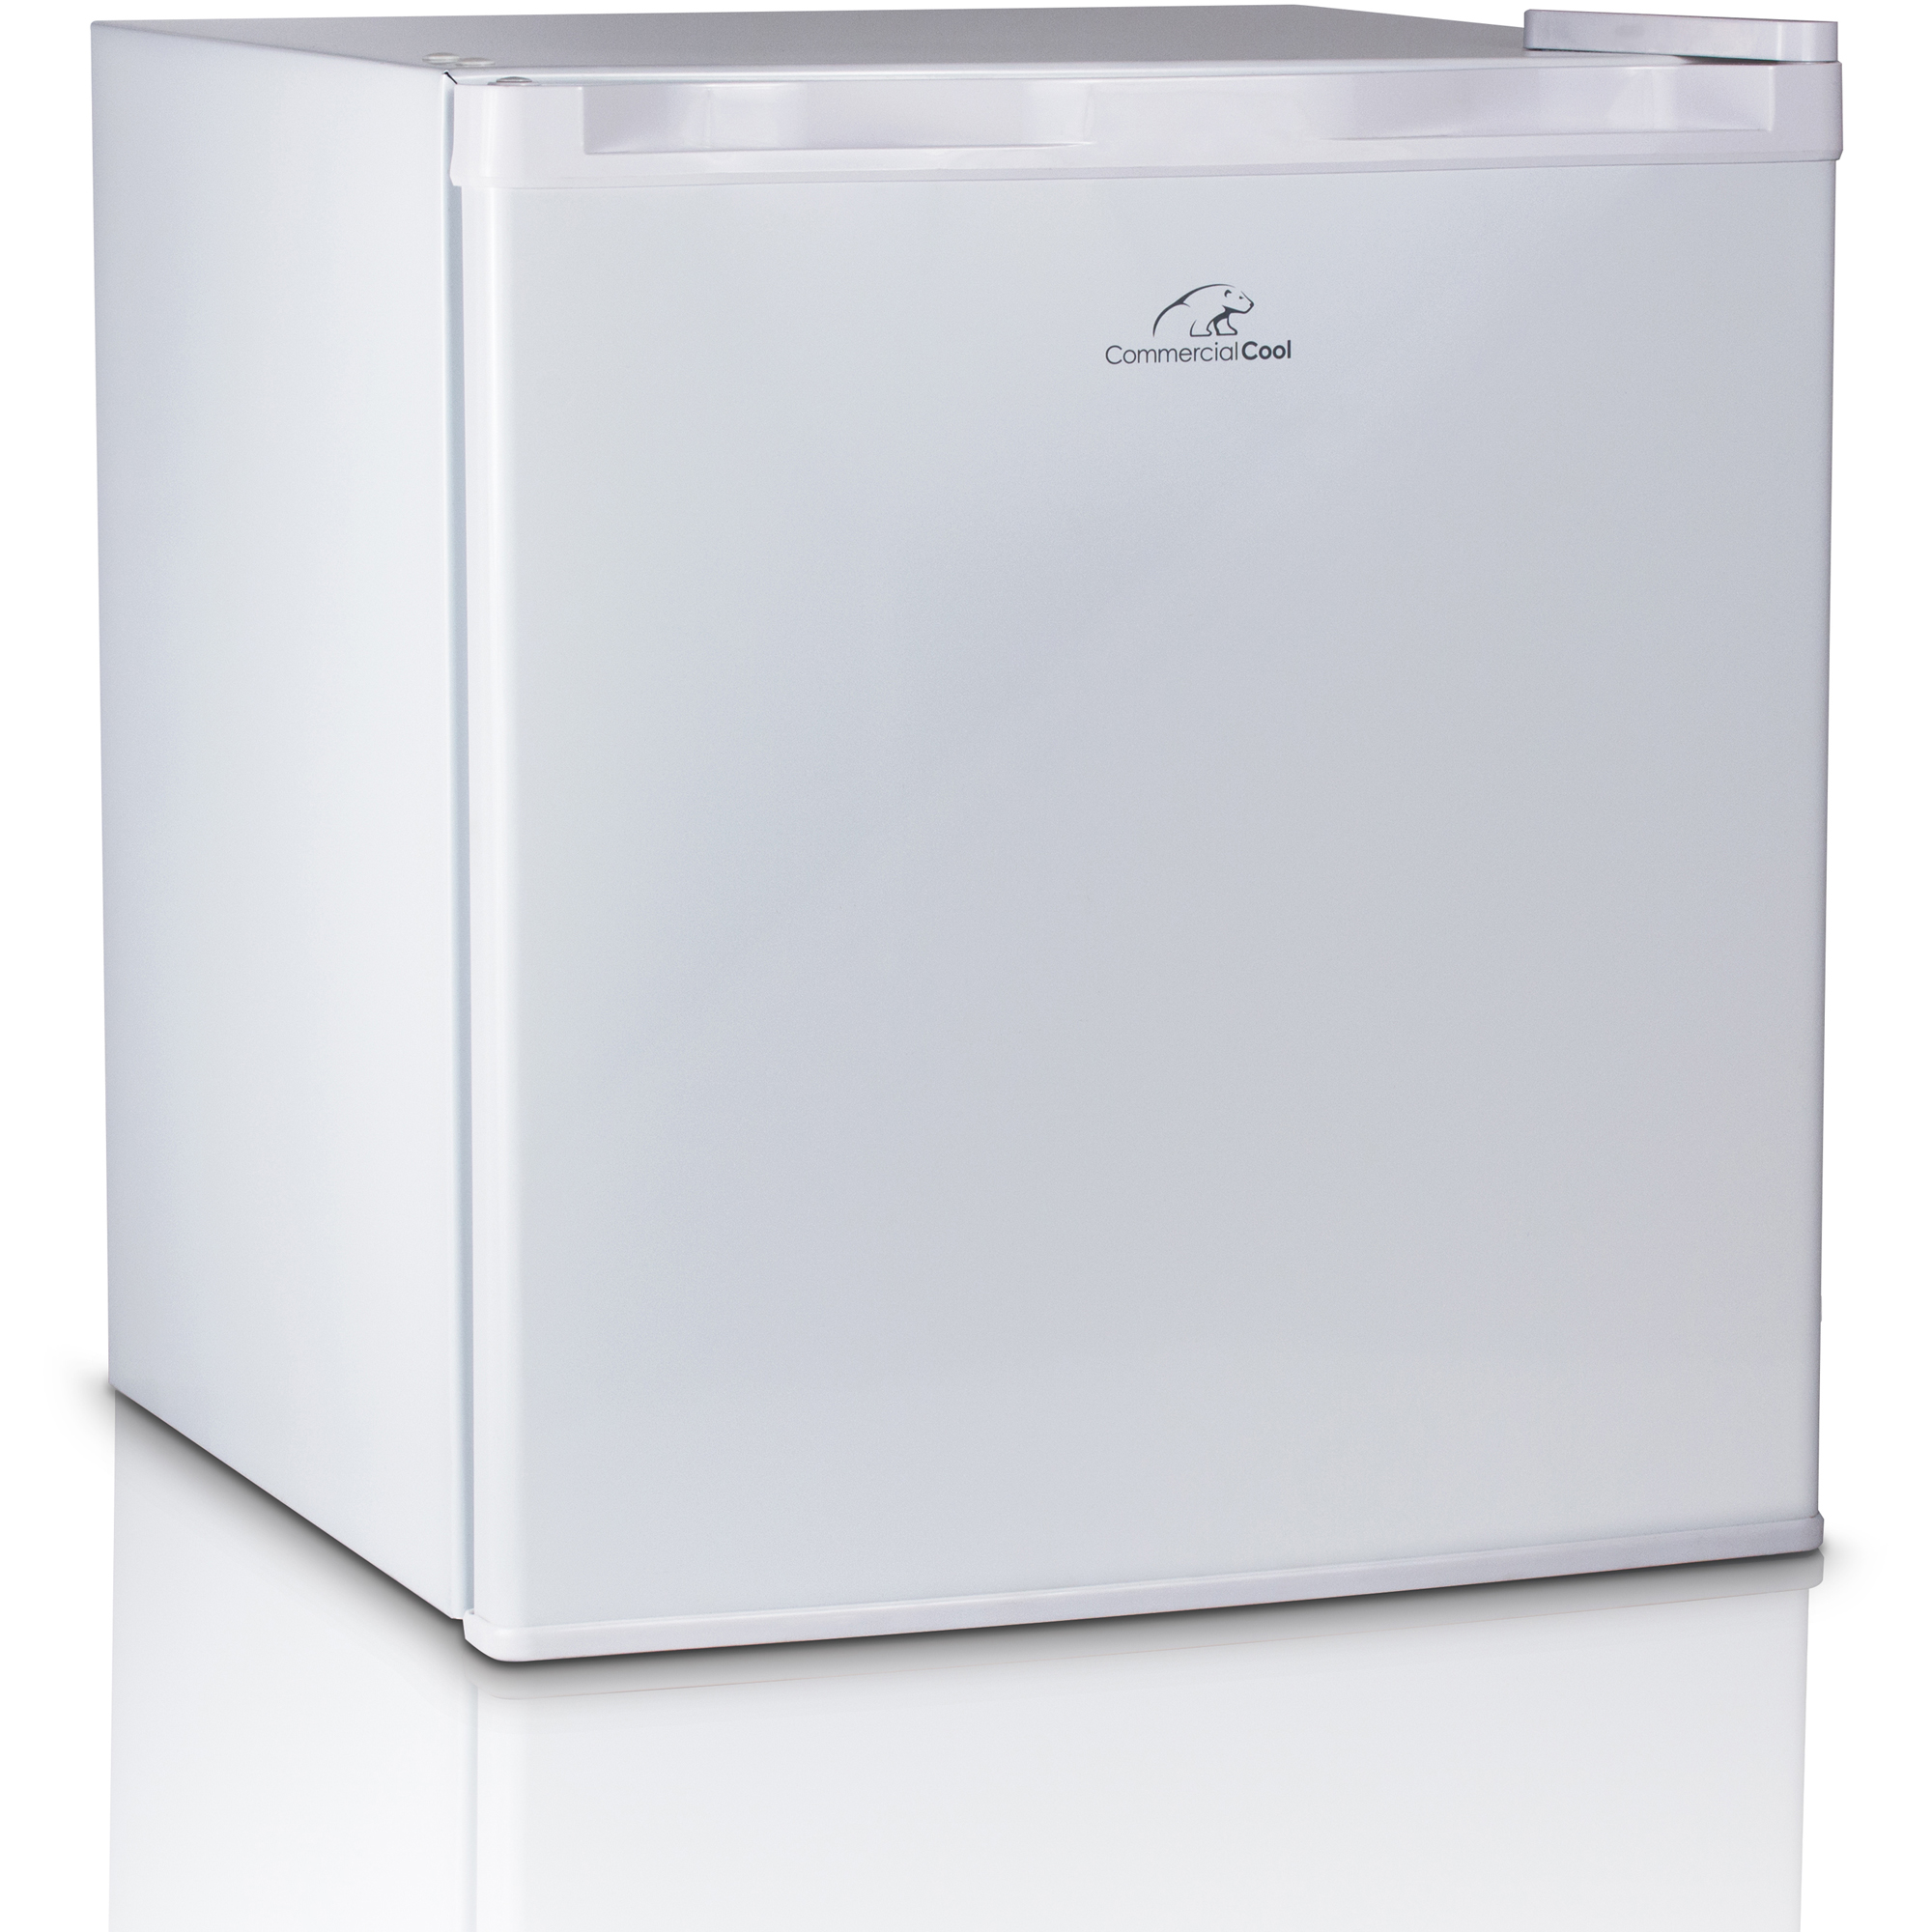 Commercial Cool 3.2 cu ft 2 Door Refrigerator with Freezer, White